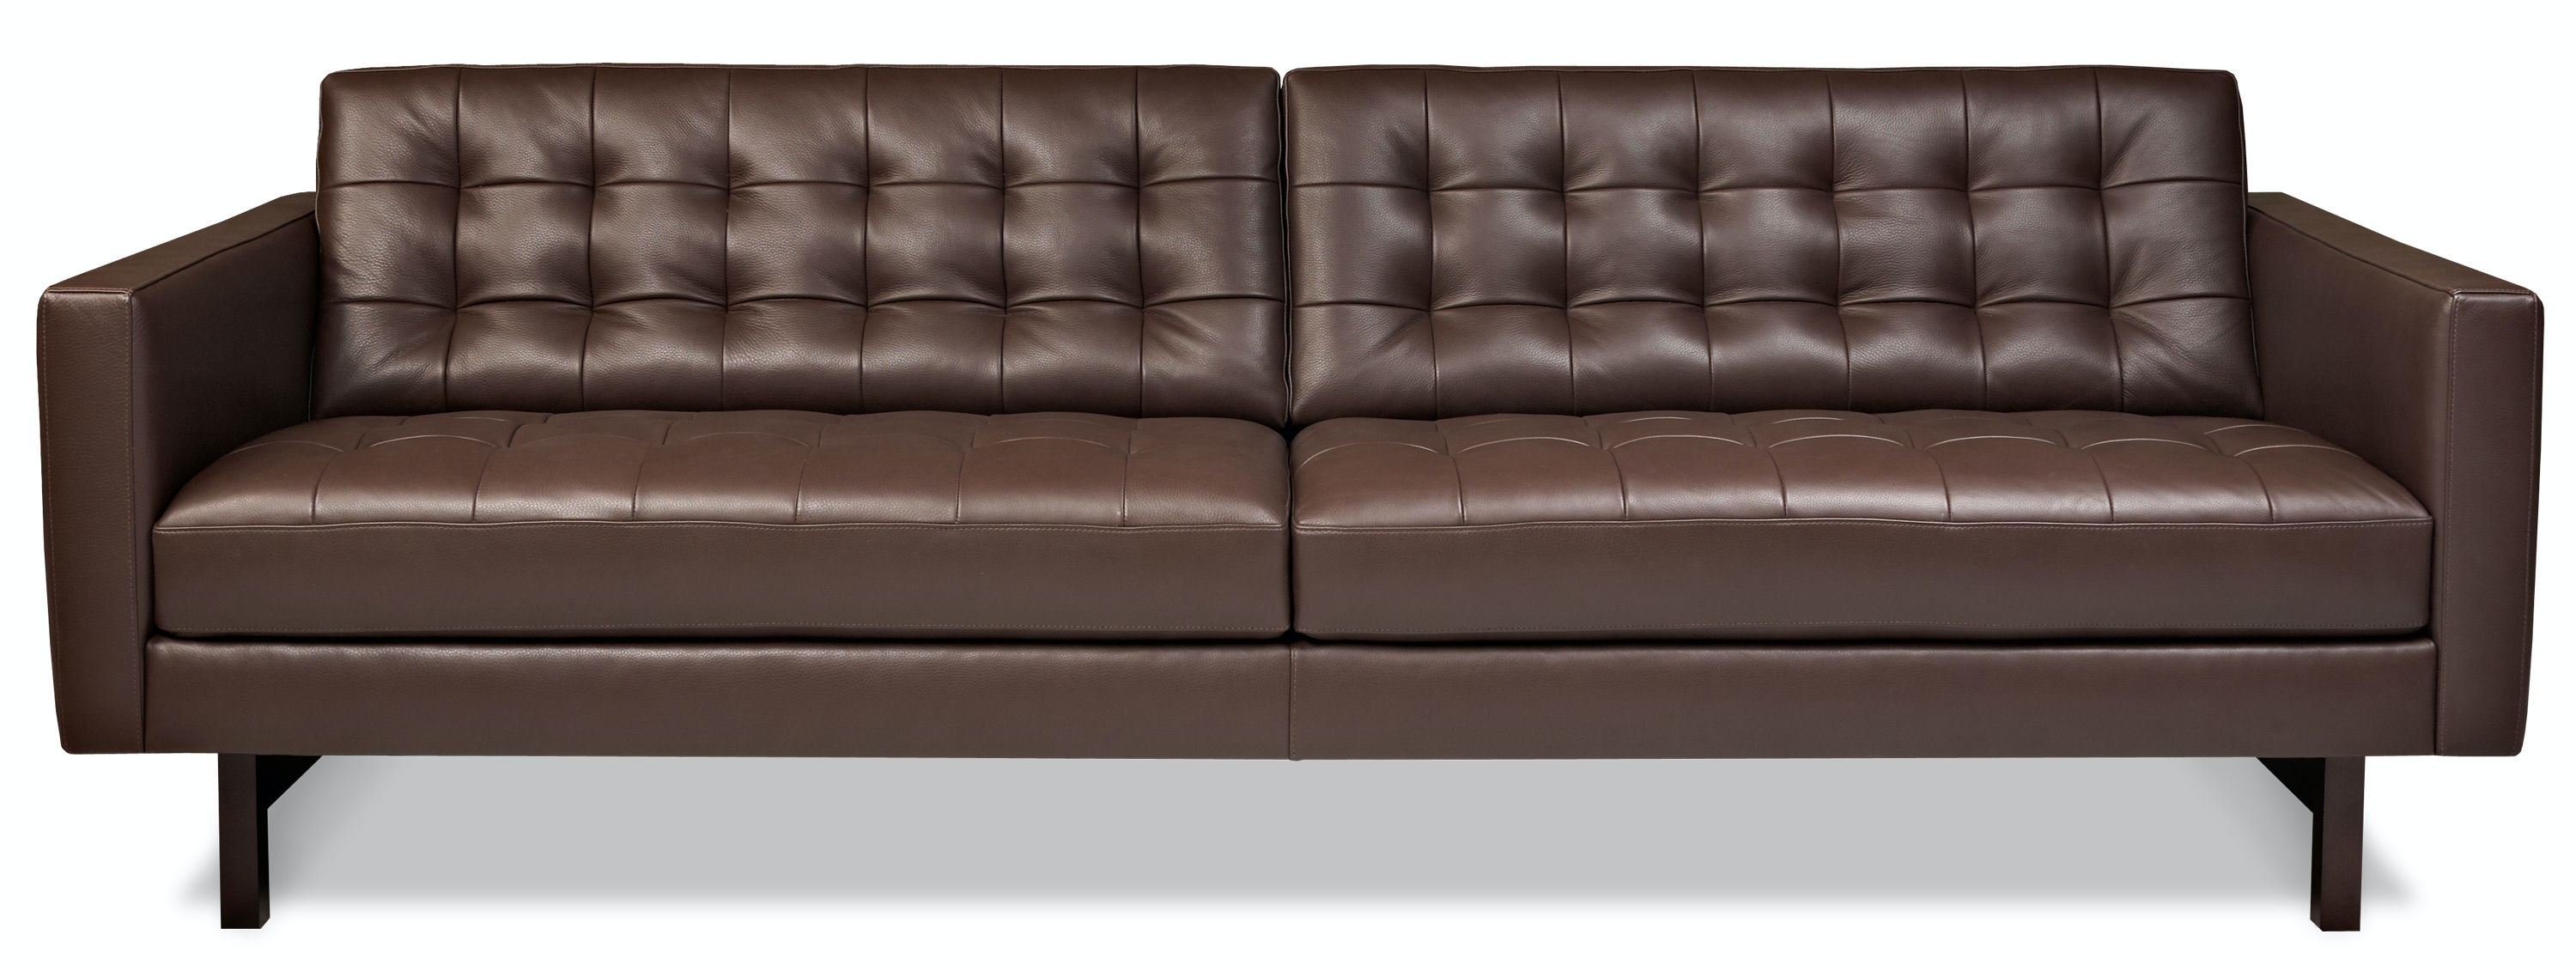 American Leather Two Cushion Sofa PKR SM2 ST From Walter E. Smithe Furniture